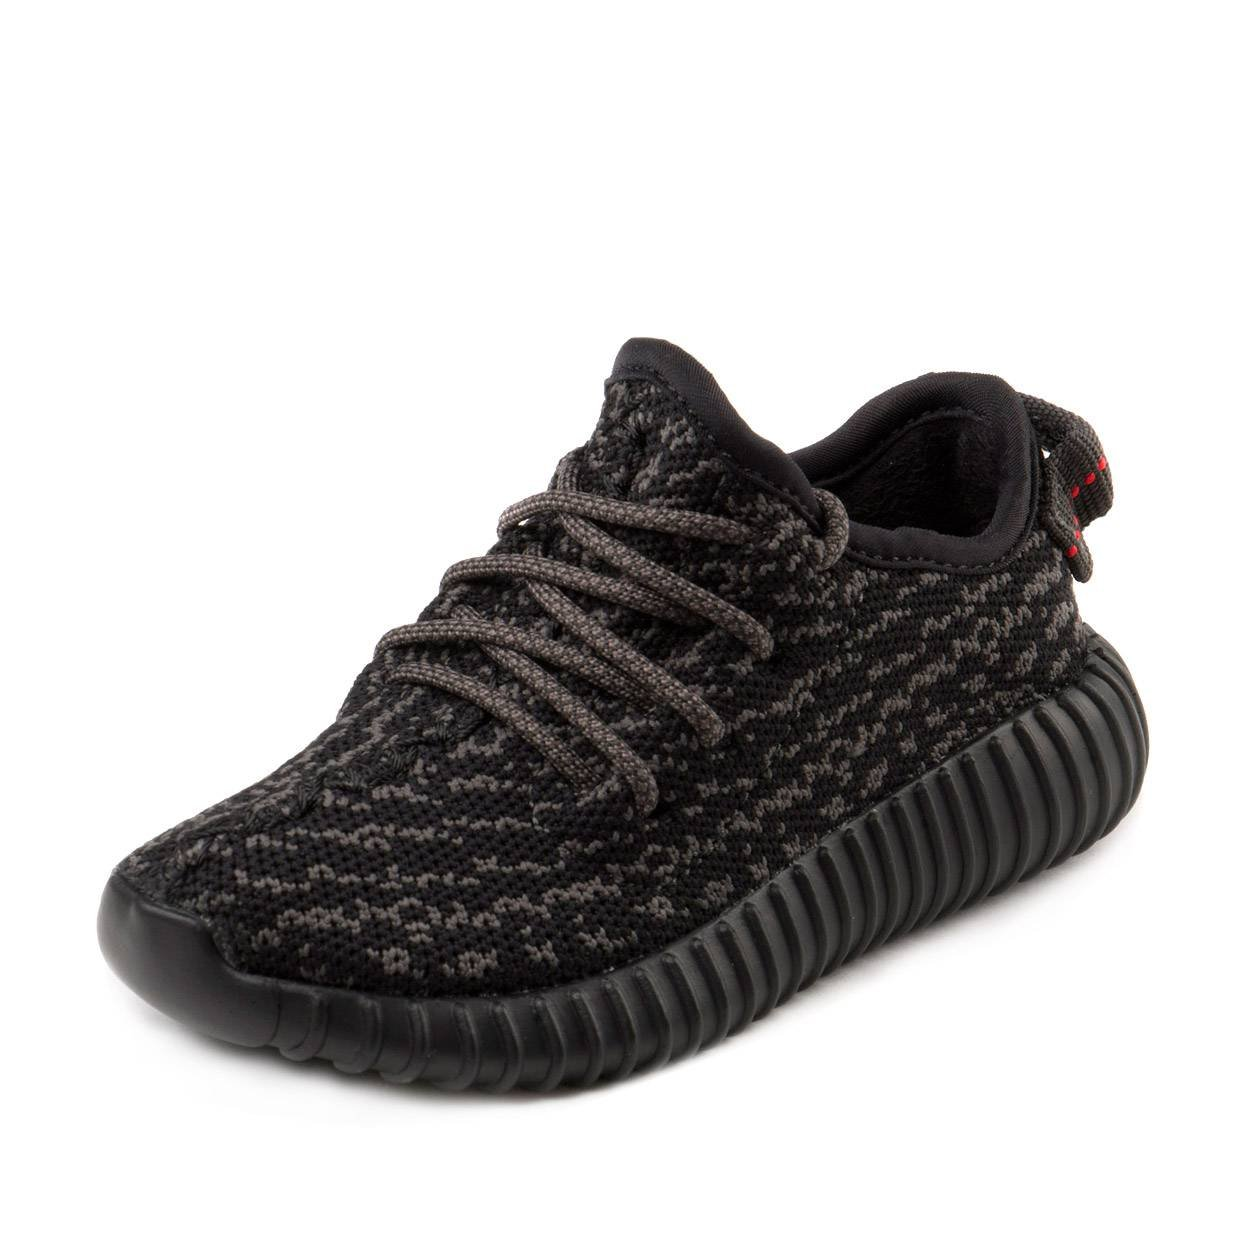 62d8ff768633f Galleon - Adidas Yeezy Boost 350 Infant - BB5355